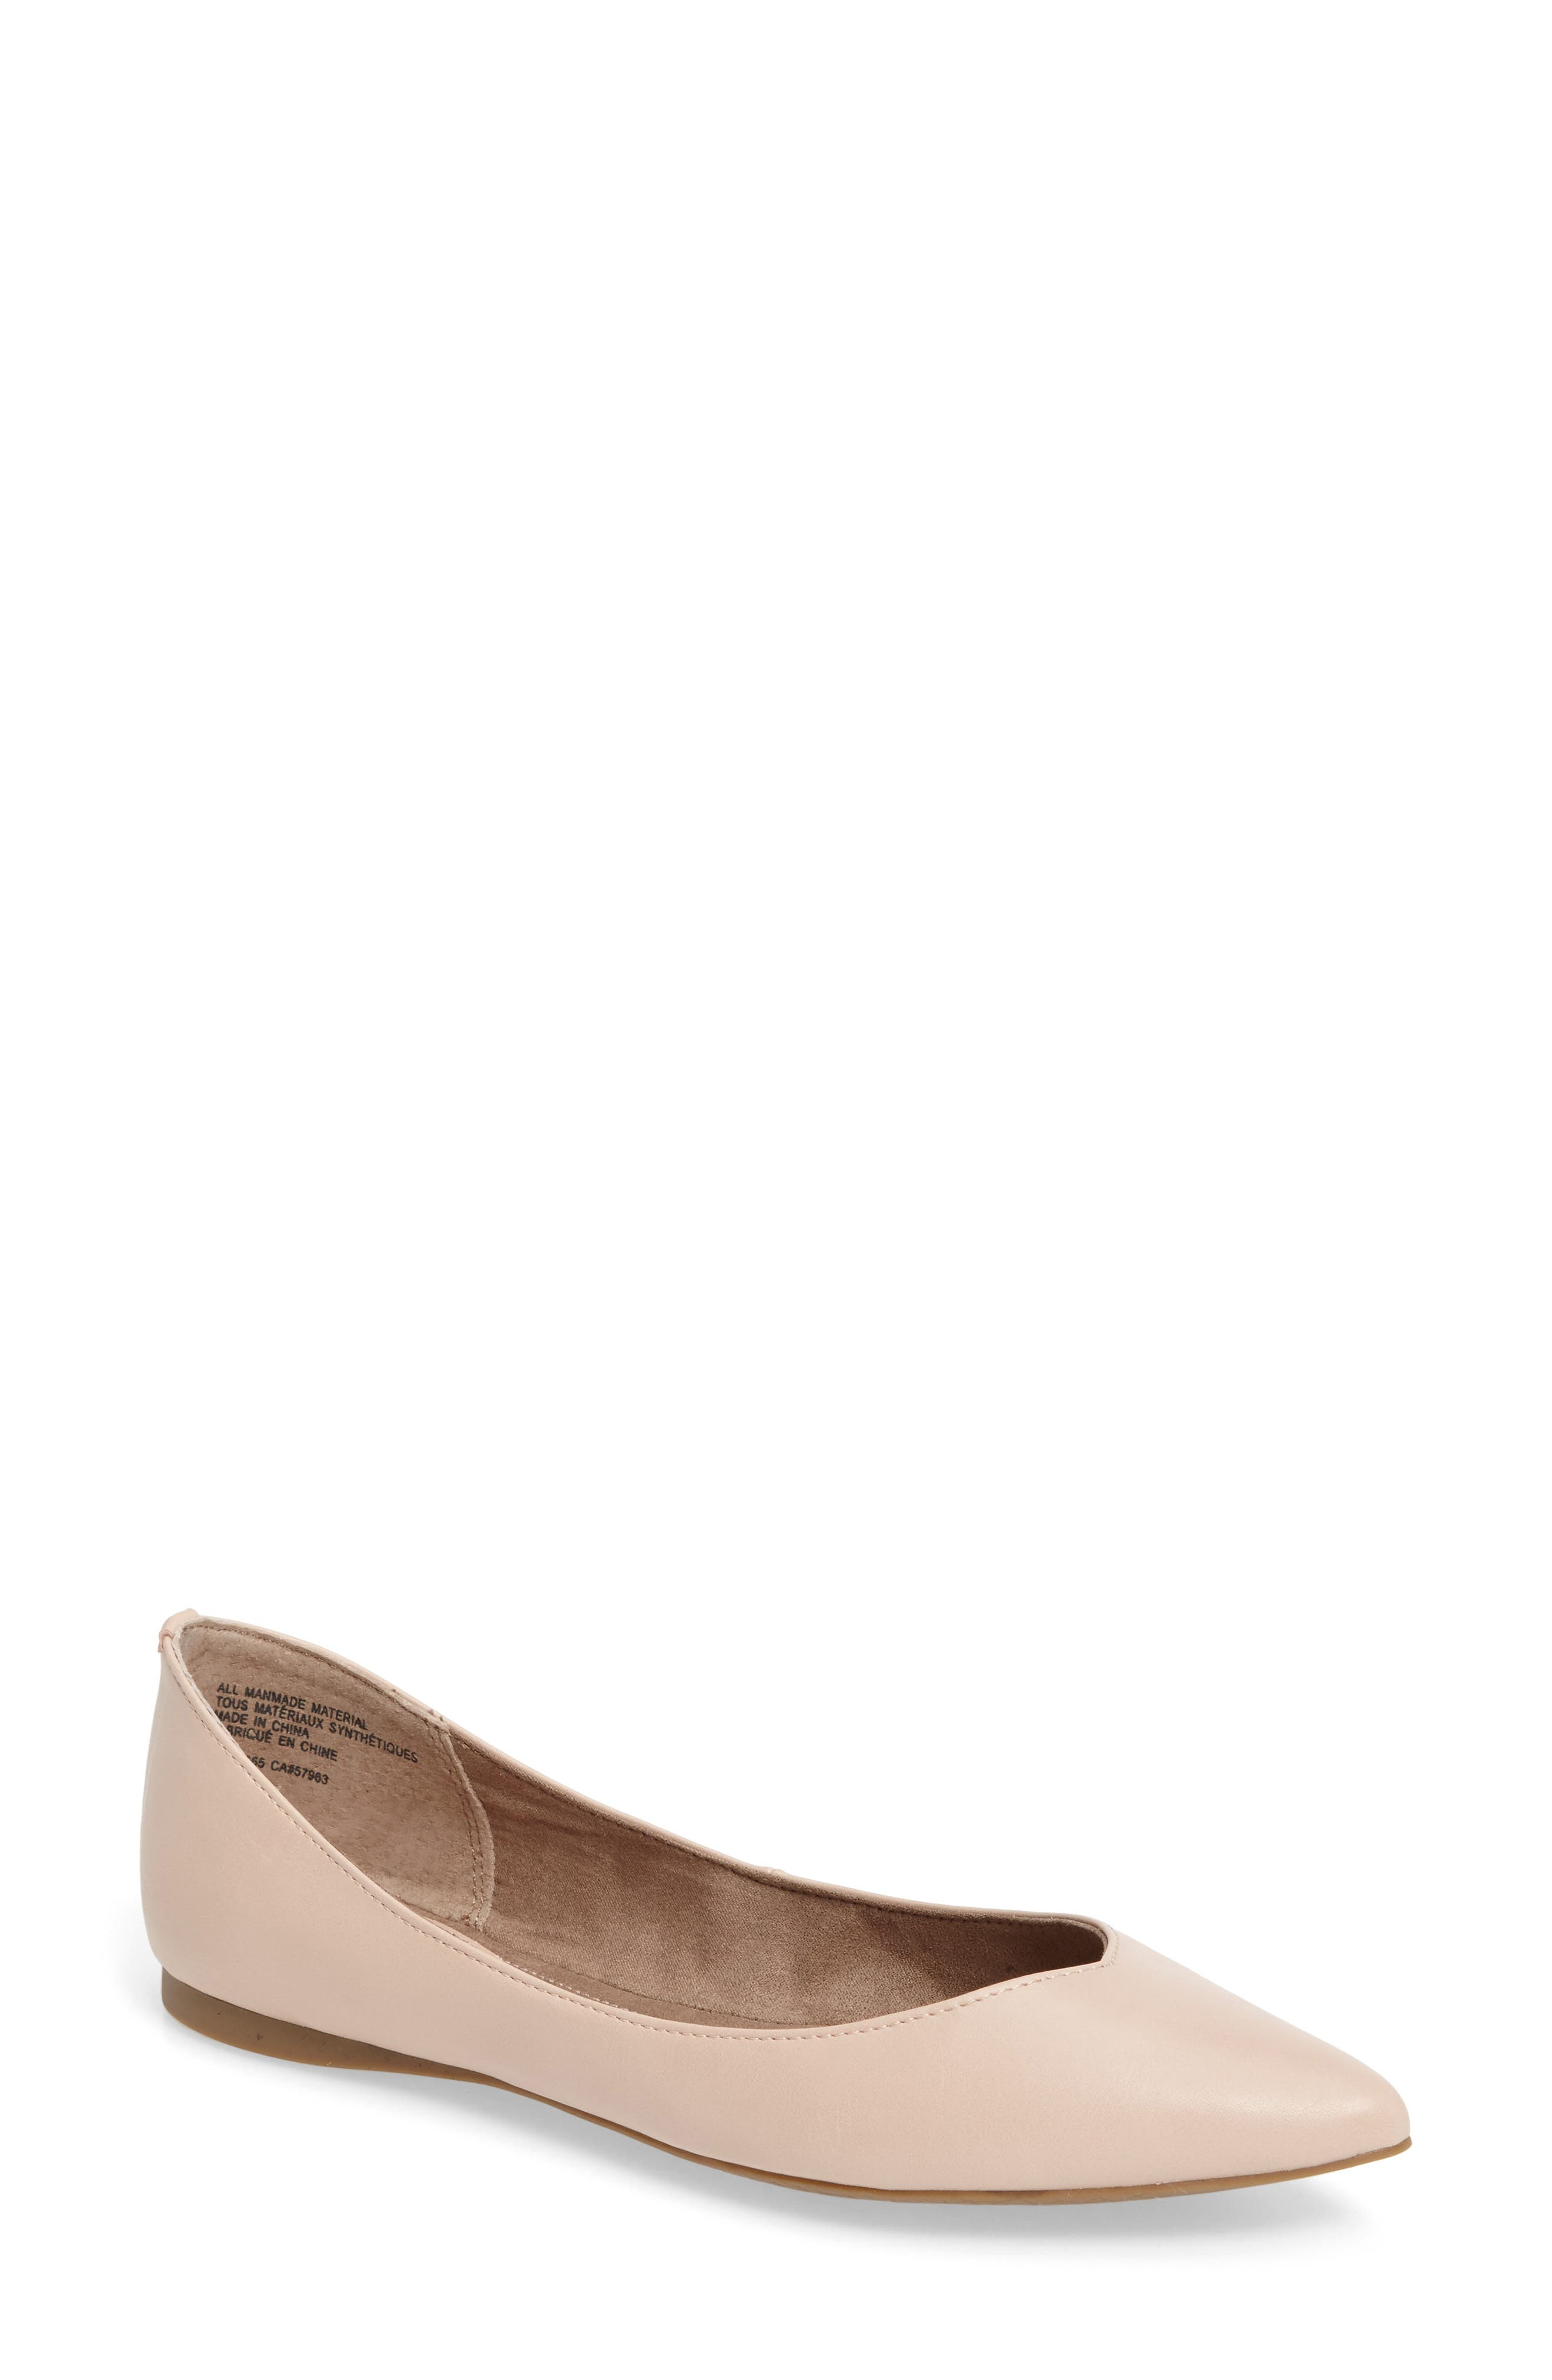 'Moveover' Pointy Toe Flat,                         Main,                         color, Blush Faux Leather